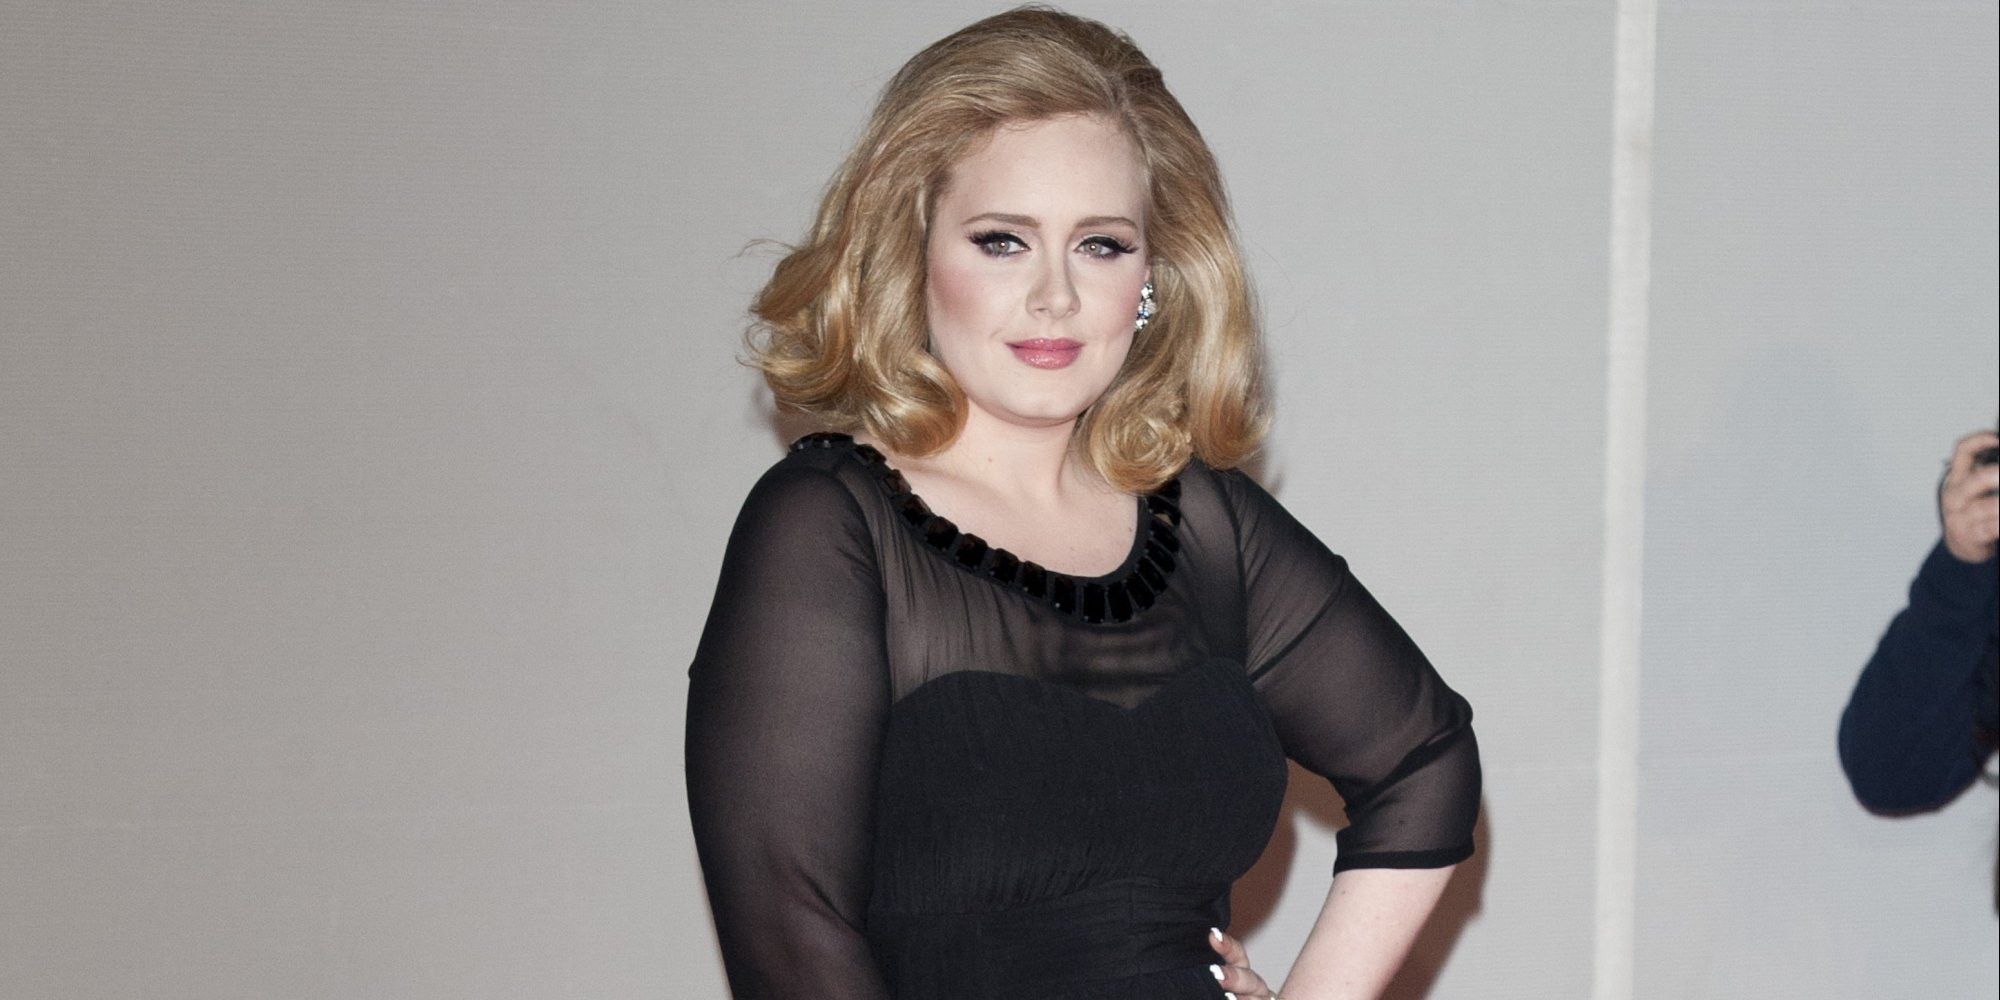 Adele New Album To Be Called '25', 'Someone Like You